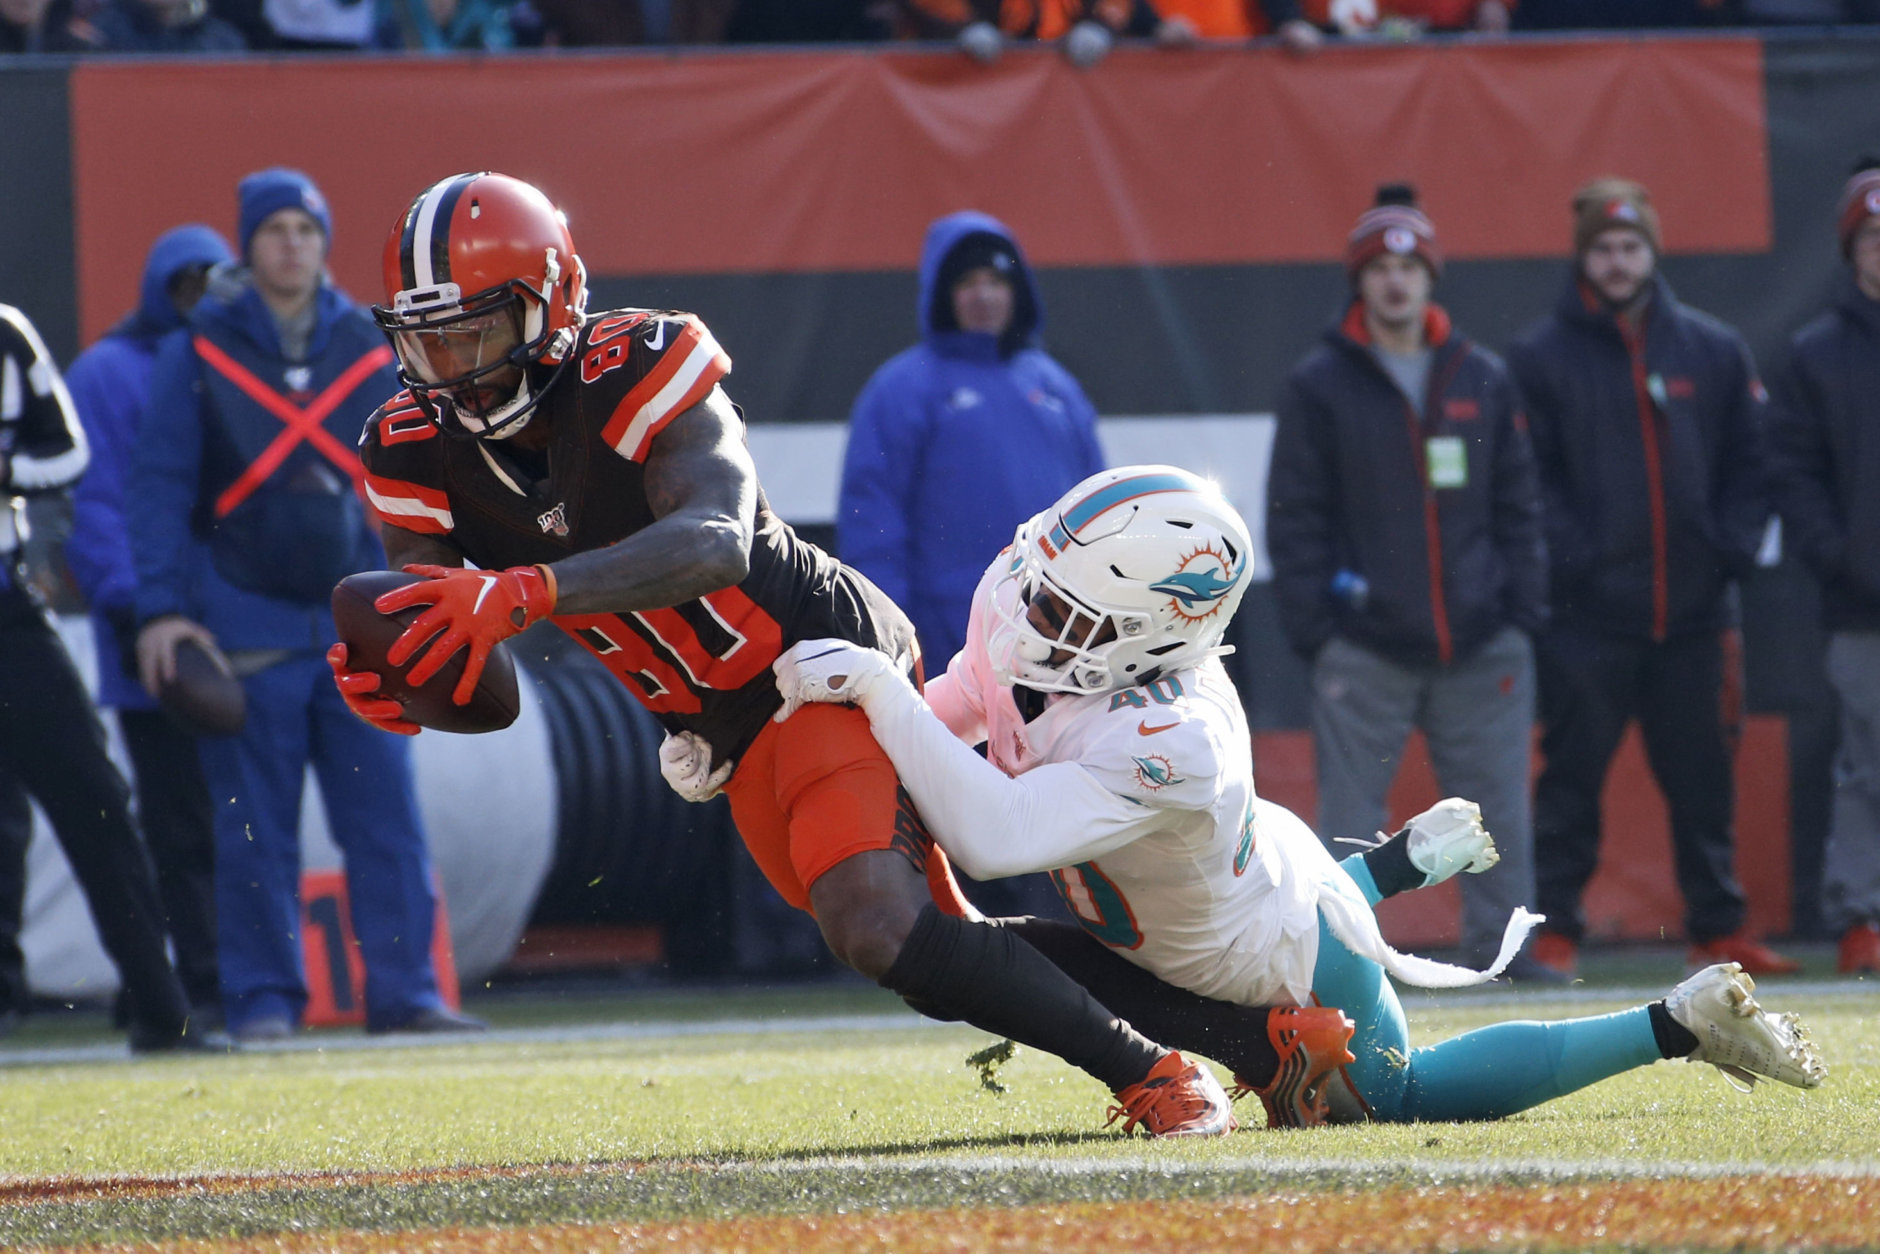 "<p><b><i>Dolphins 24</i></b><br /> <b><i>Browns 41</i></b></p> <p>For the second straight week, Cleveland stained a much-needed victory with <a href=""https://twitter.com/H_Grove/status/1198648162807881729?s=20"" target=""_blank"" rel=""noopener"">Mason Rudolph-related shenanigans</a>. Even Bruce Allen can&#8217;t think this culture is any good.</p>"